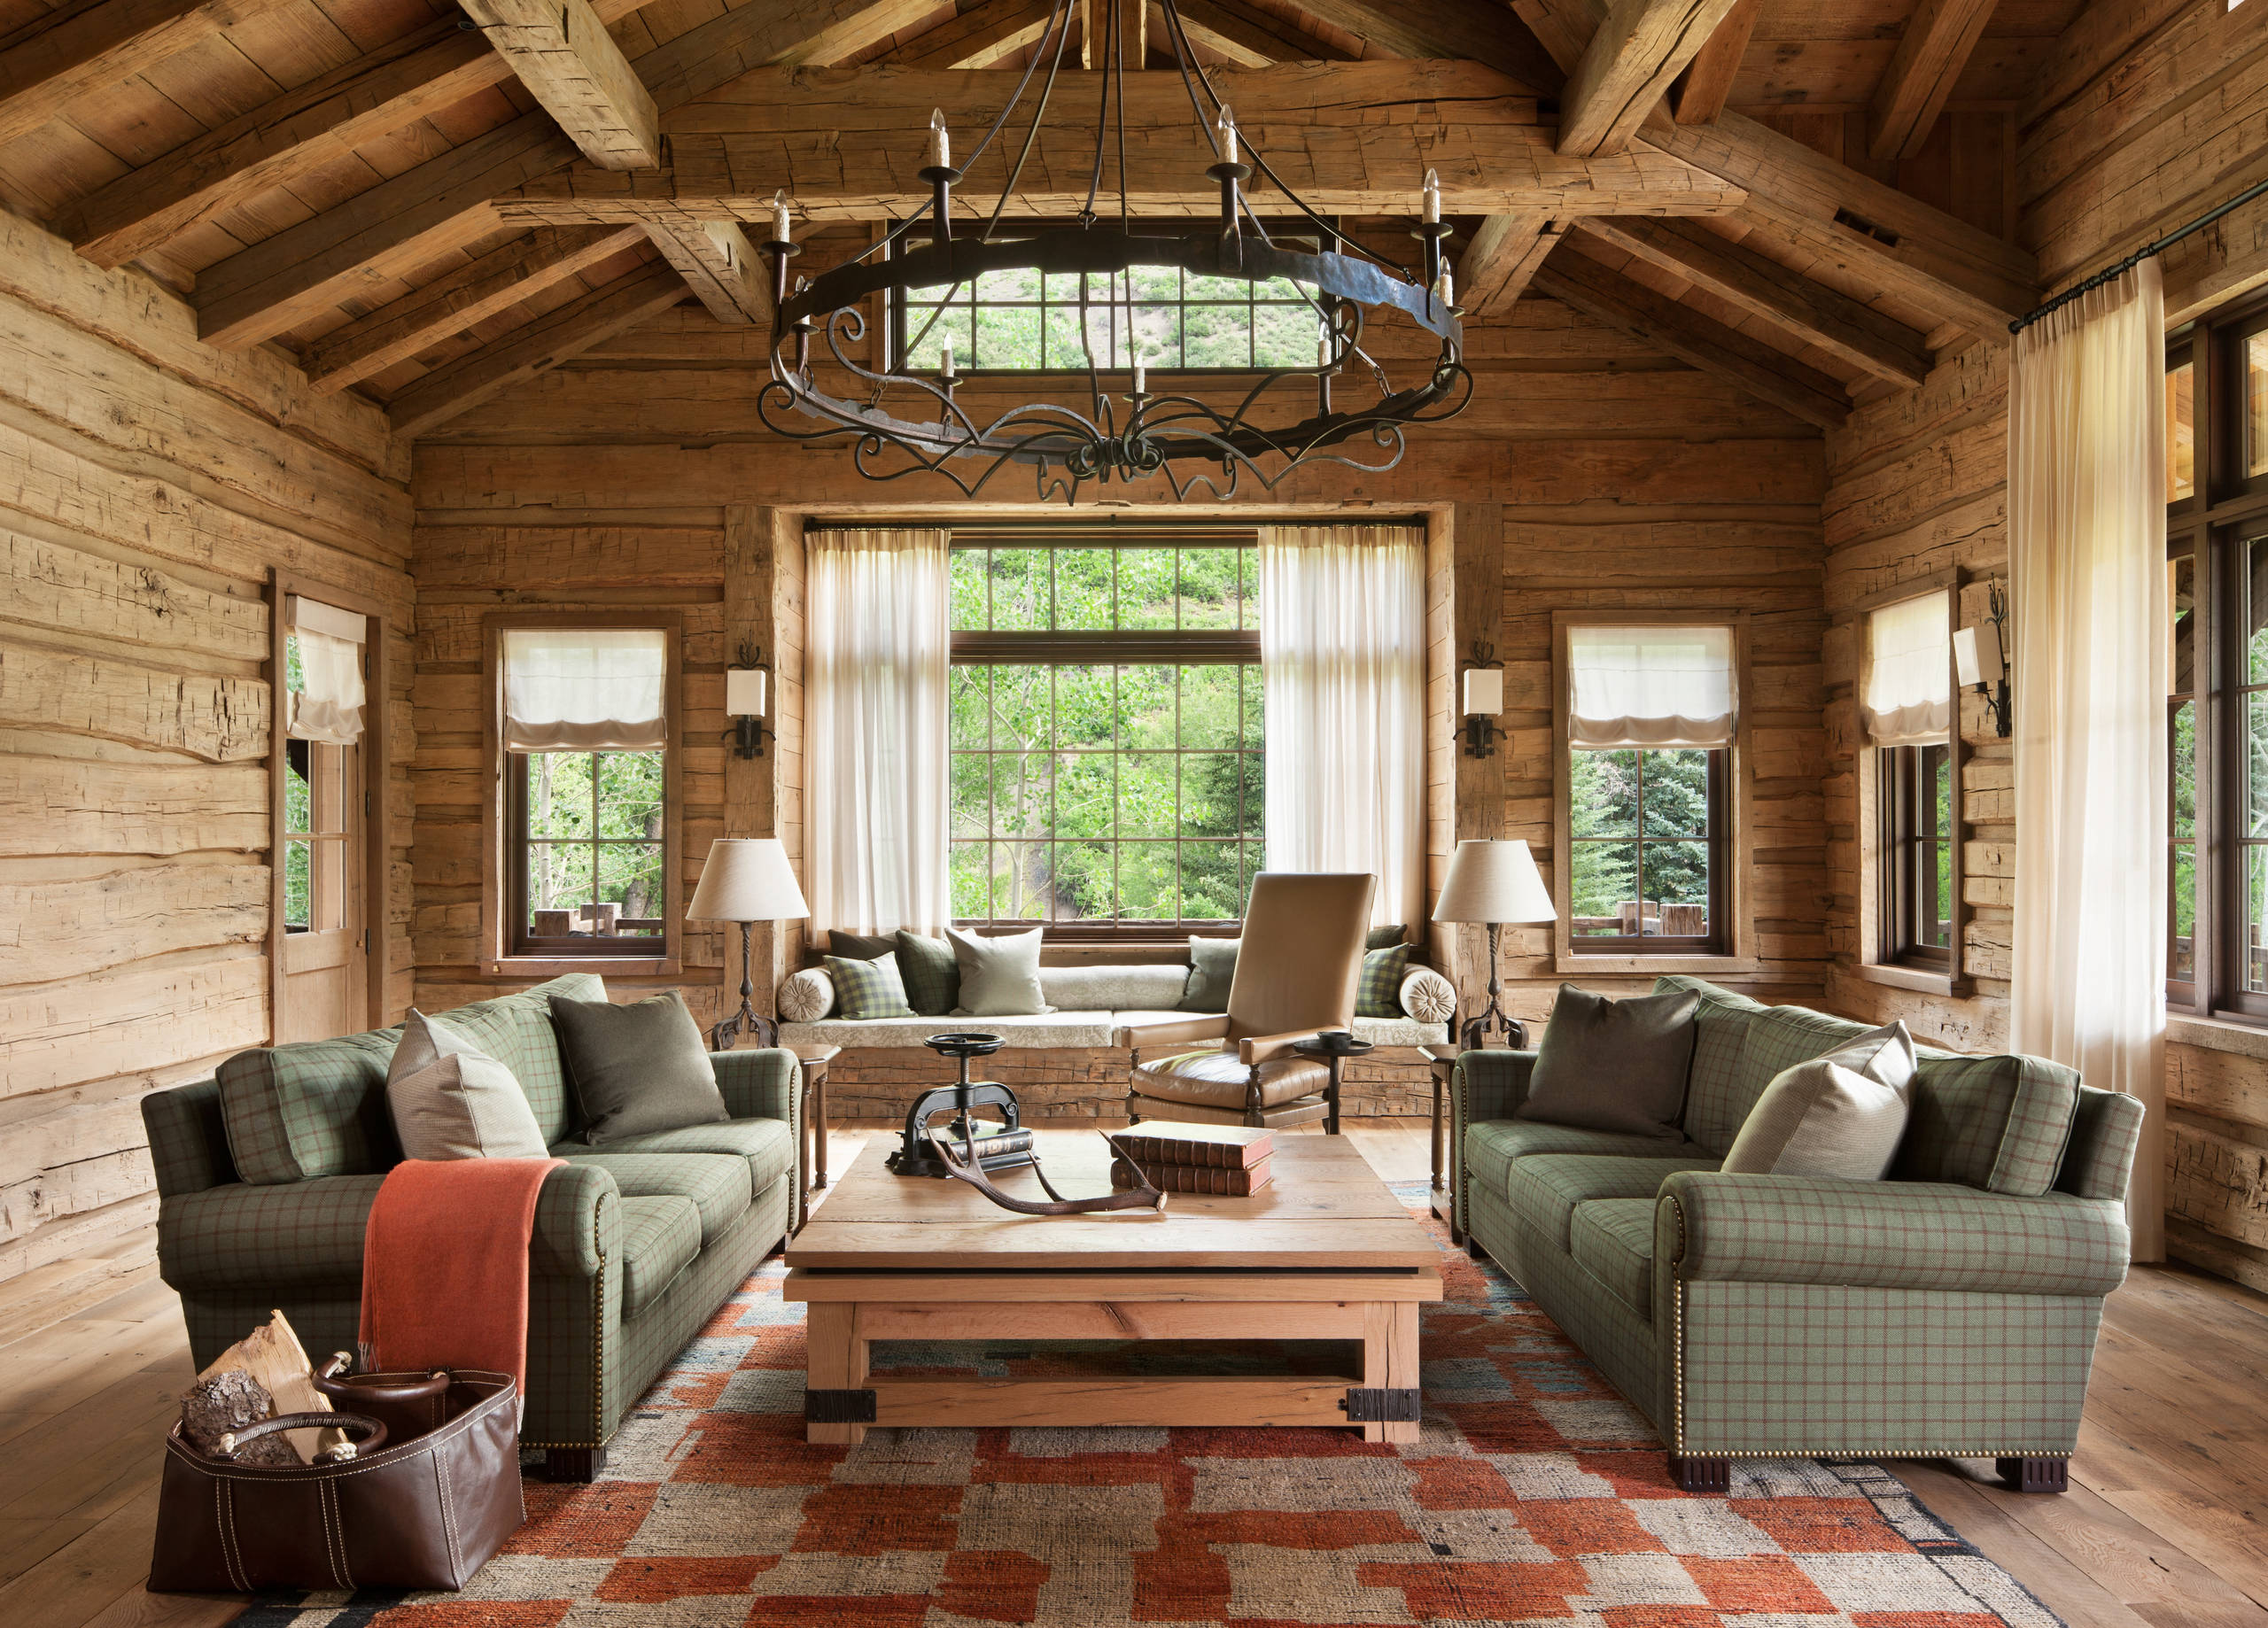 16 Sophisticated Rustic Living Room Designs You Won't Turn ... on Living Room Design Ideas  id=20541